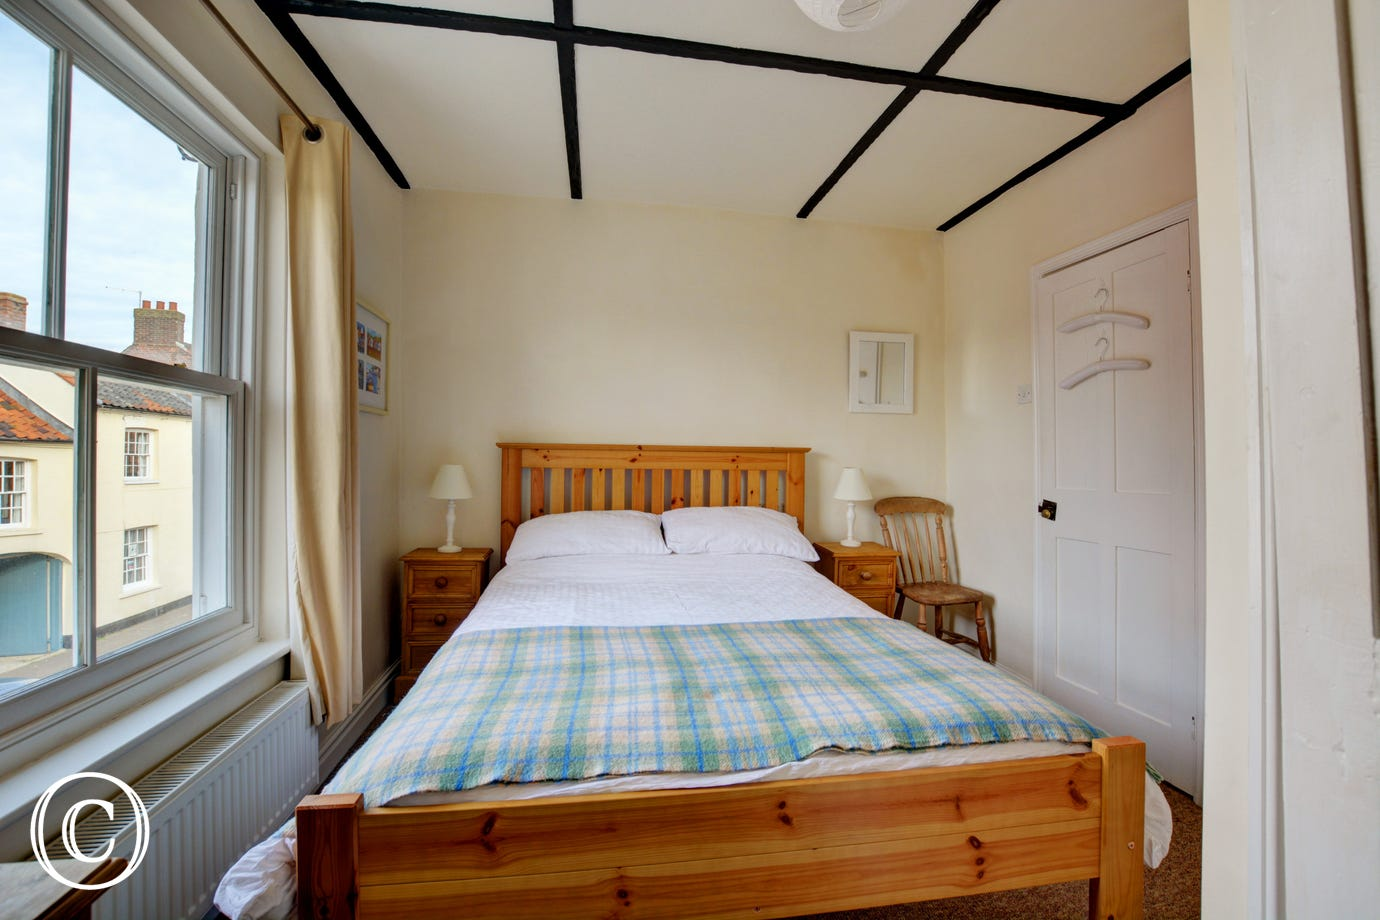 Light and airy double bedroom with en-suite shower room.